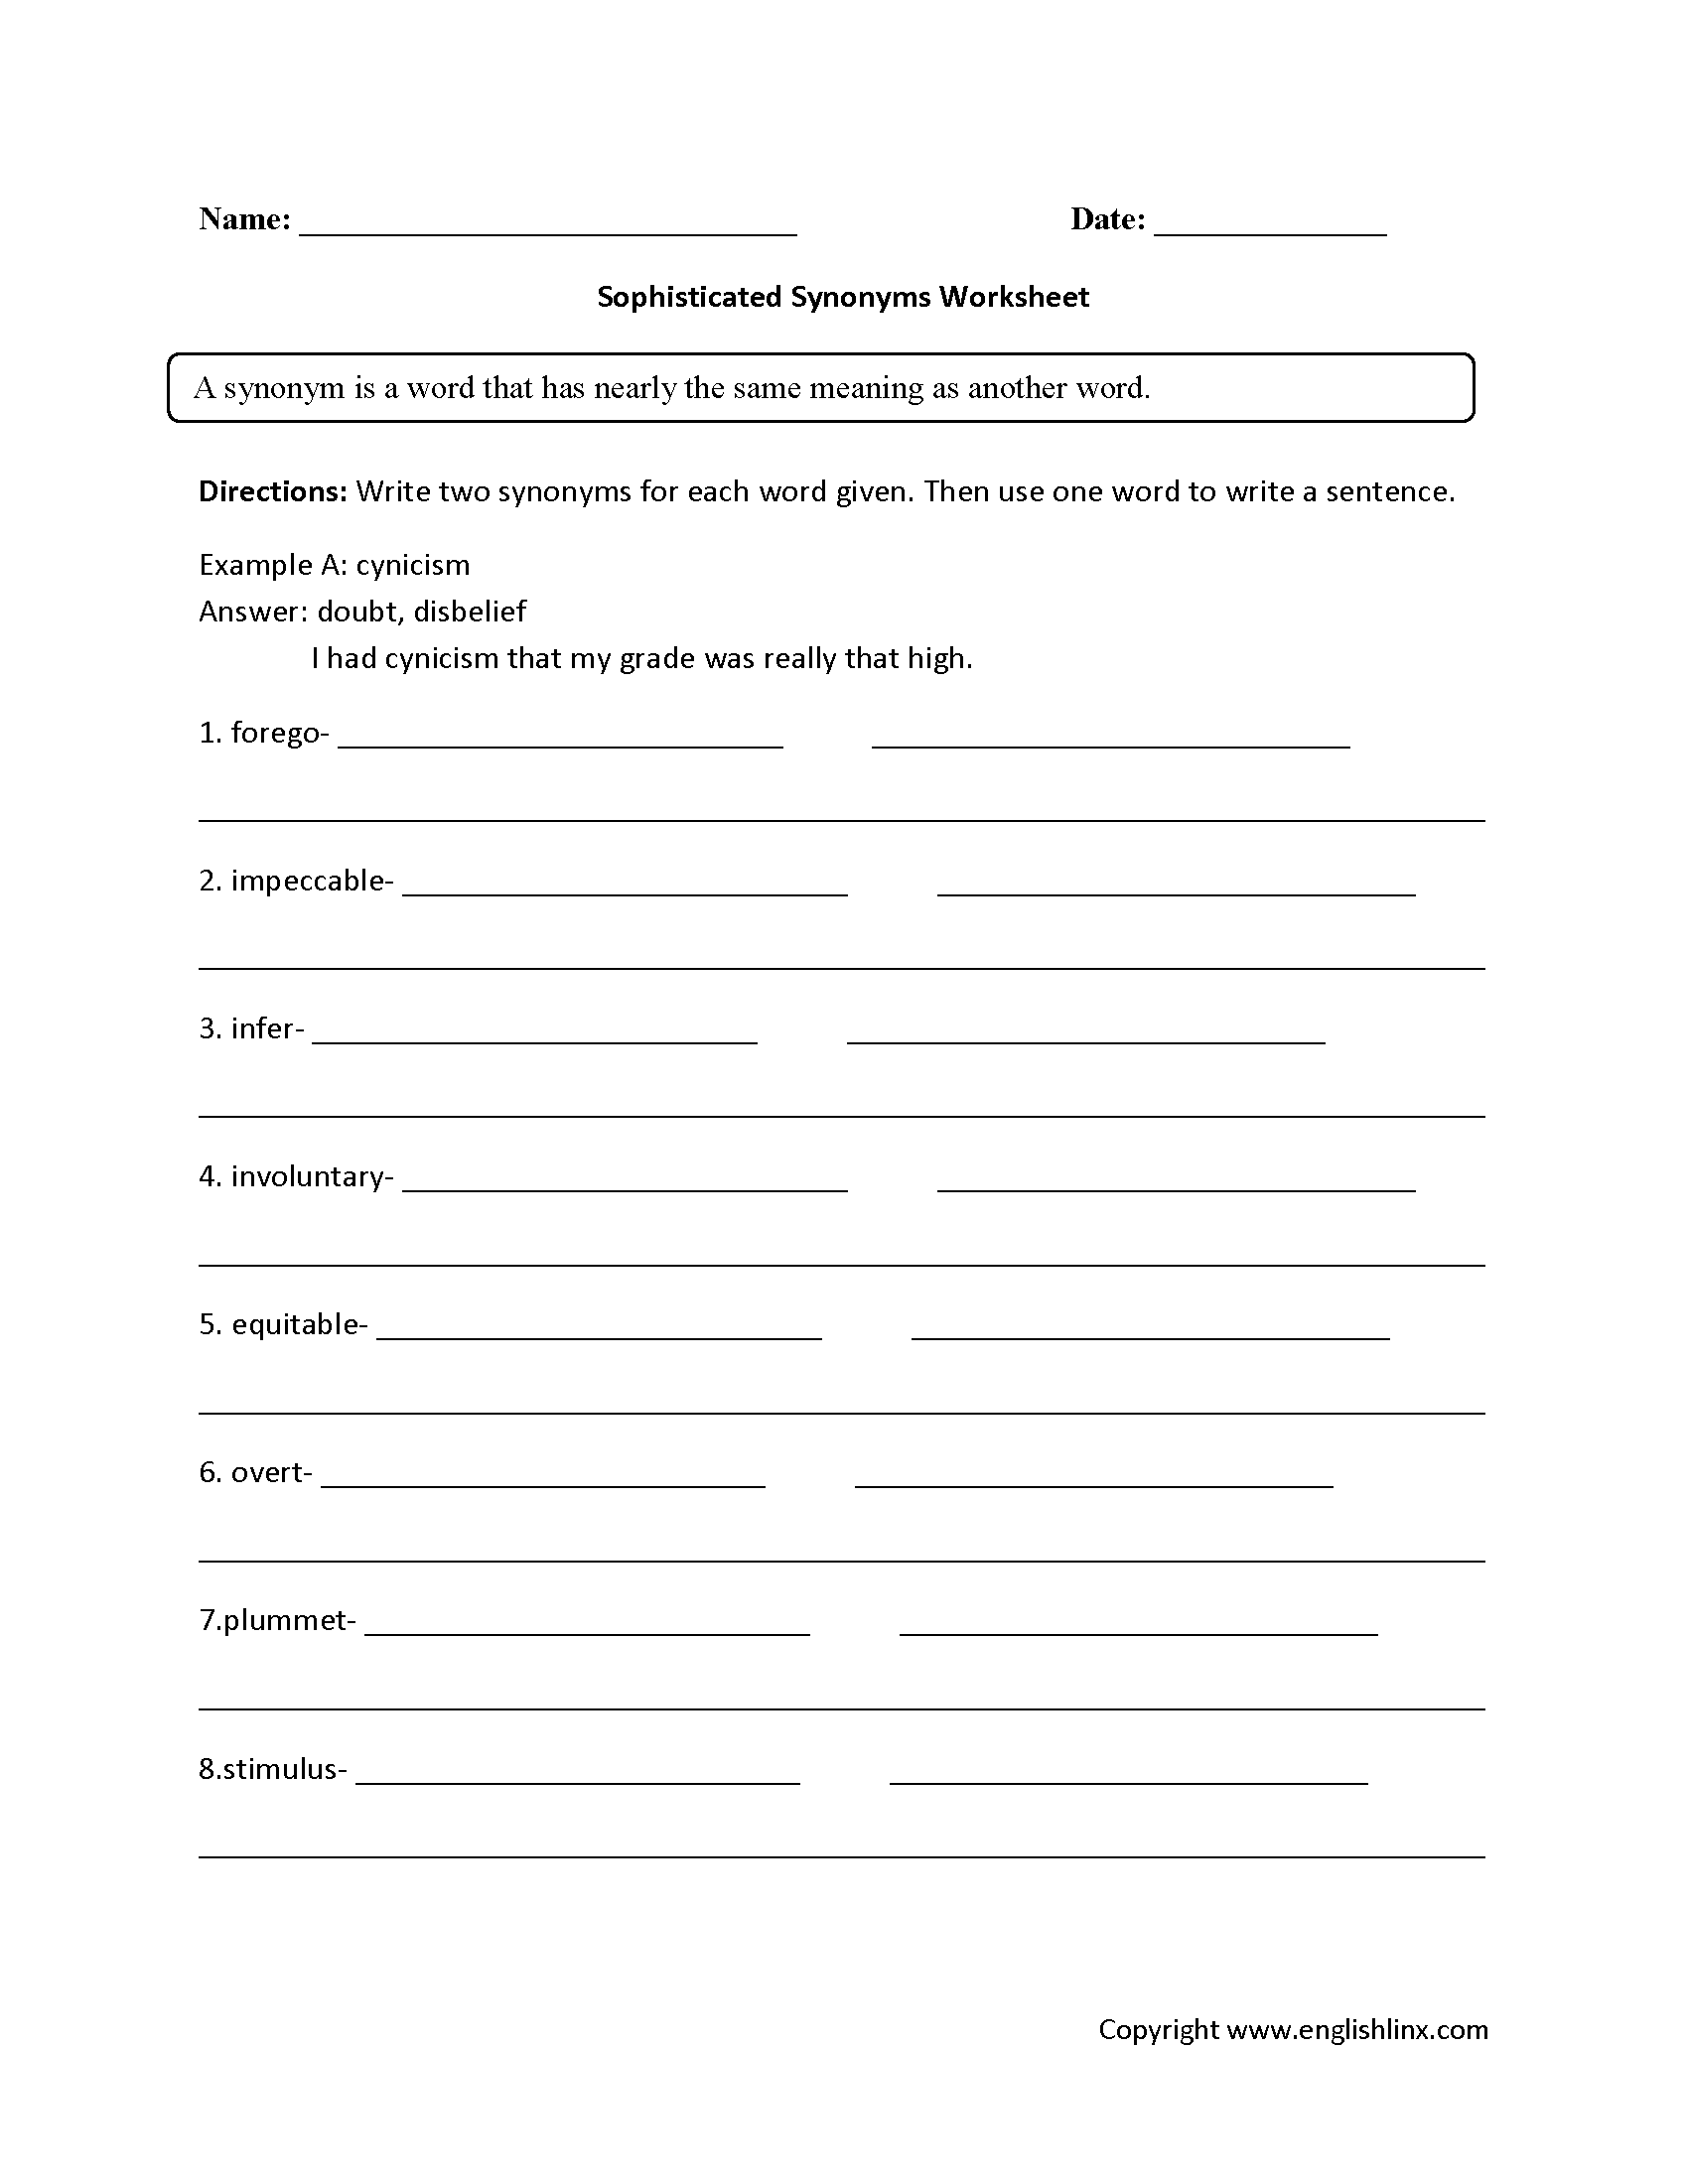 Worksheets Synonym Worksheets englishlinx com synonyms worksheets worksheets